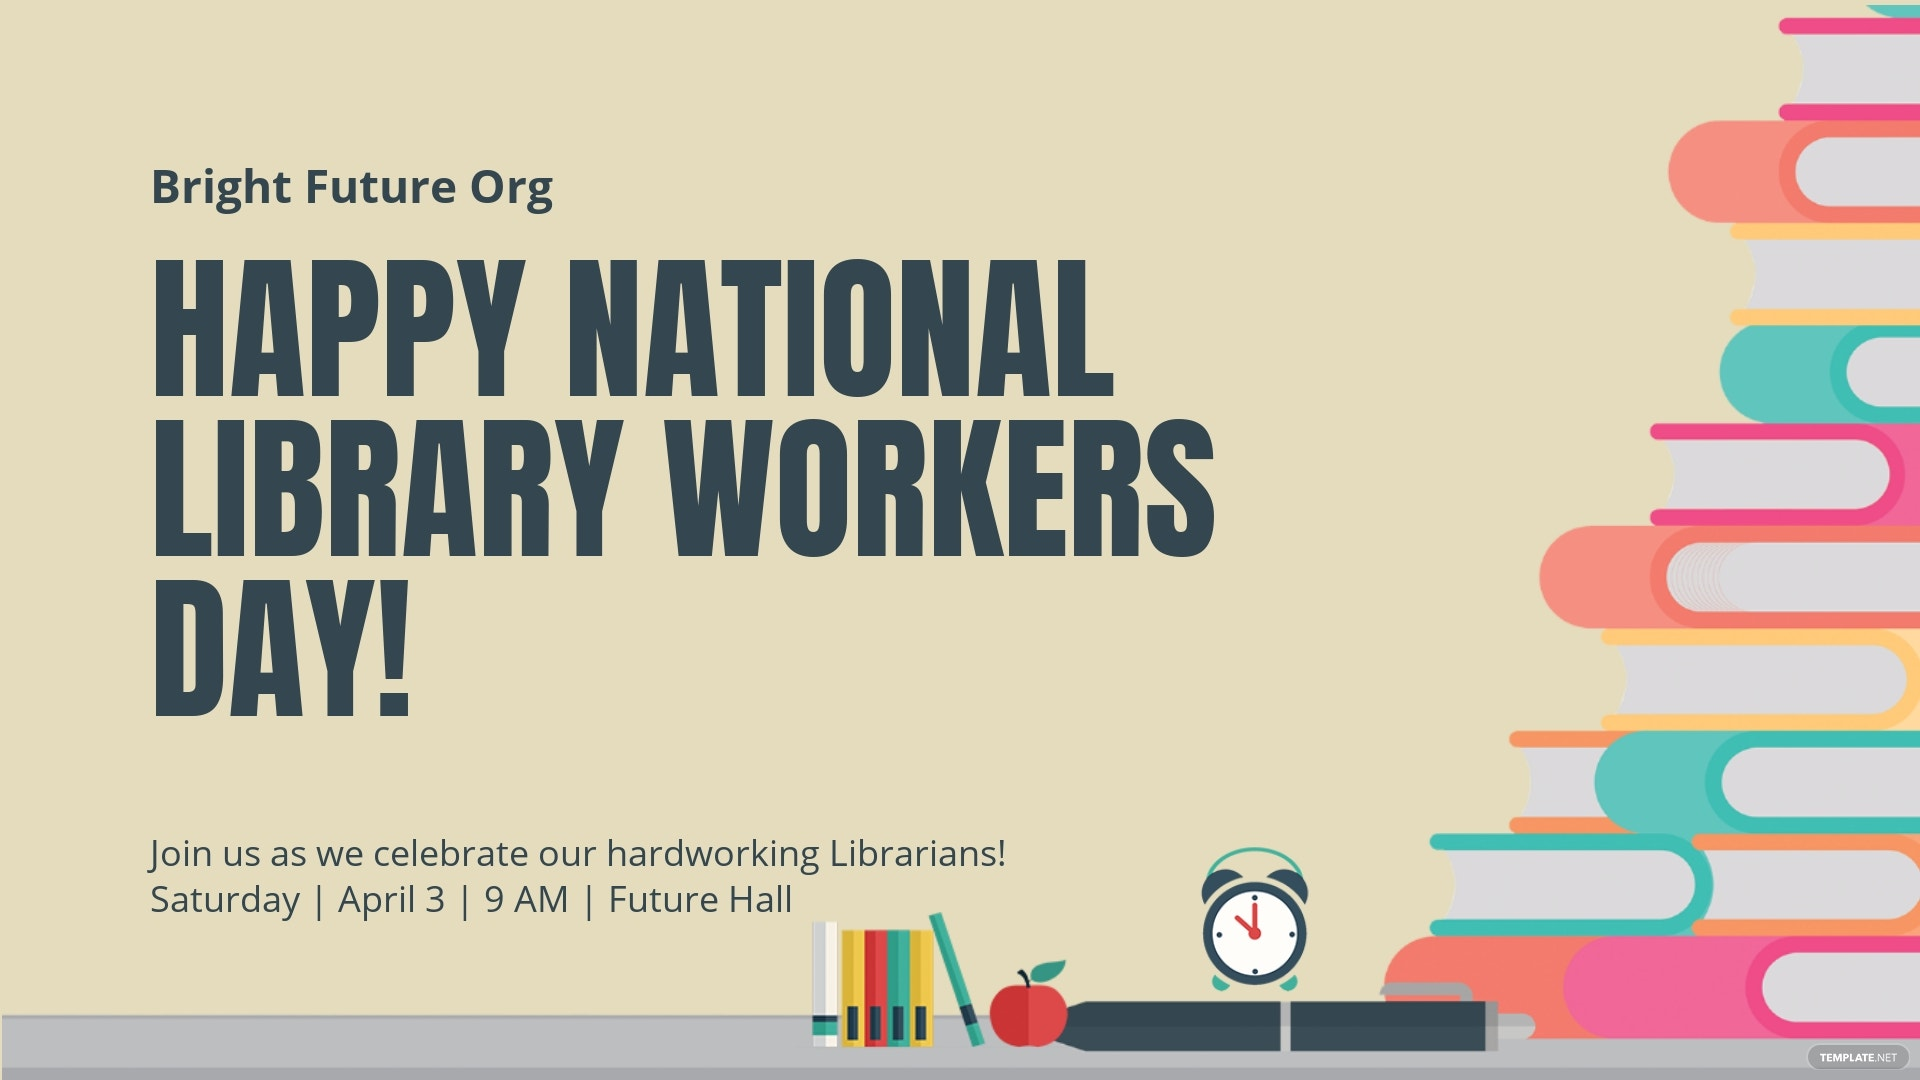 National Library Workers Day Facebook Event Cover Template